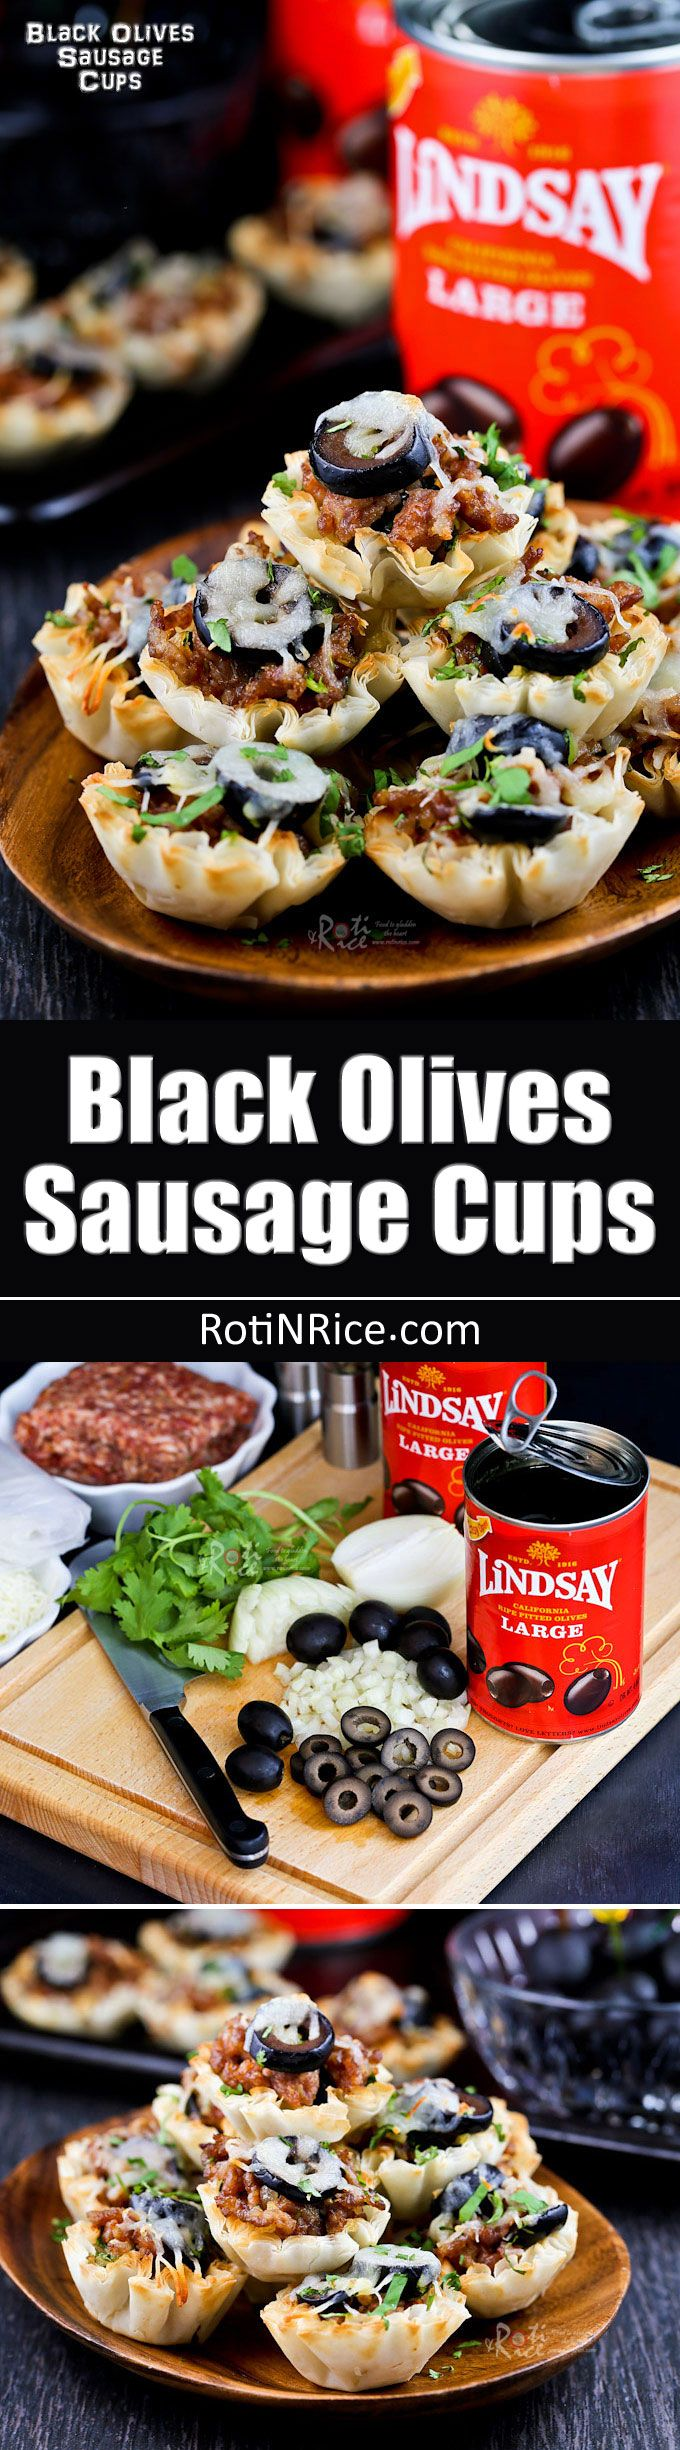 These tasty Black Olives Sausage Cups are the perfect appetizers for Game Day or any social gathering. Very quick and easy to prepare. #TeamLindsay #GameDayMoment #ad #sponsored @lindsayolives | RotiNRice.com